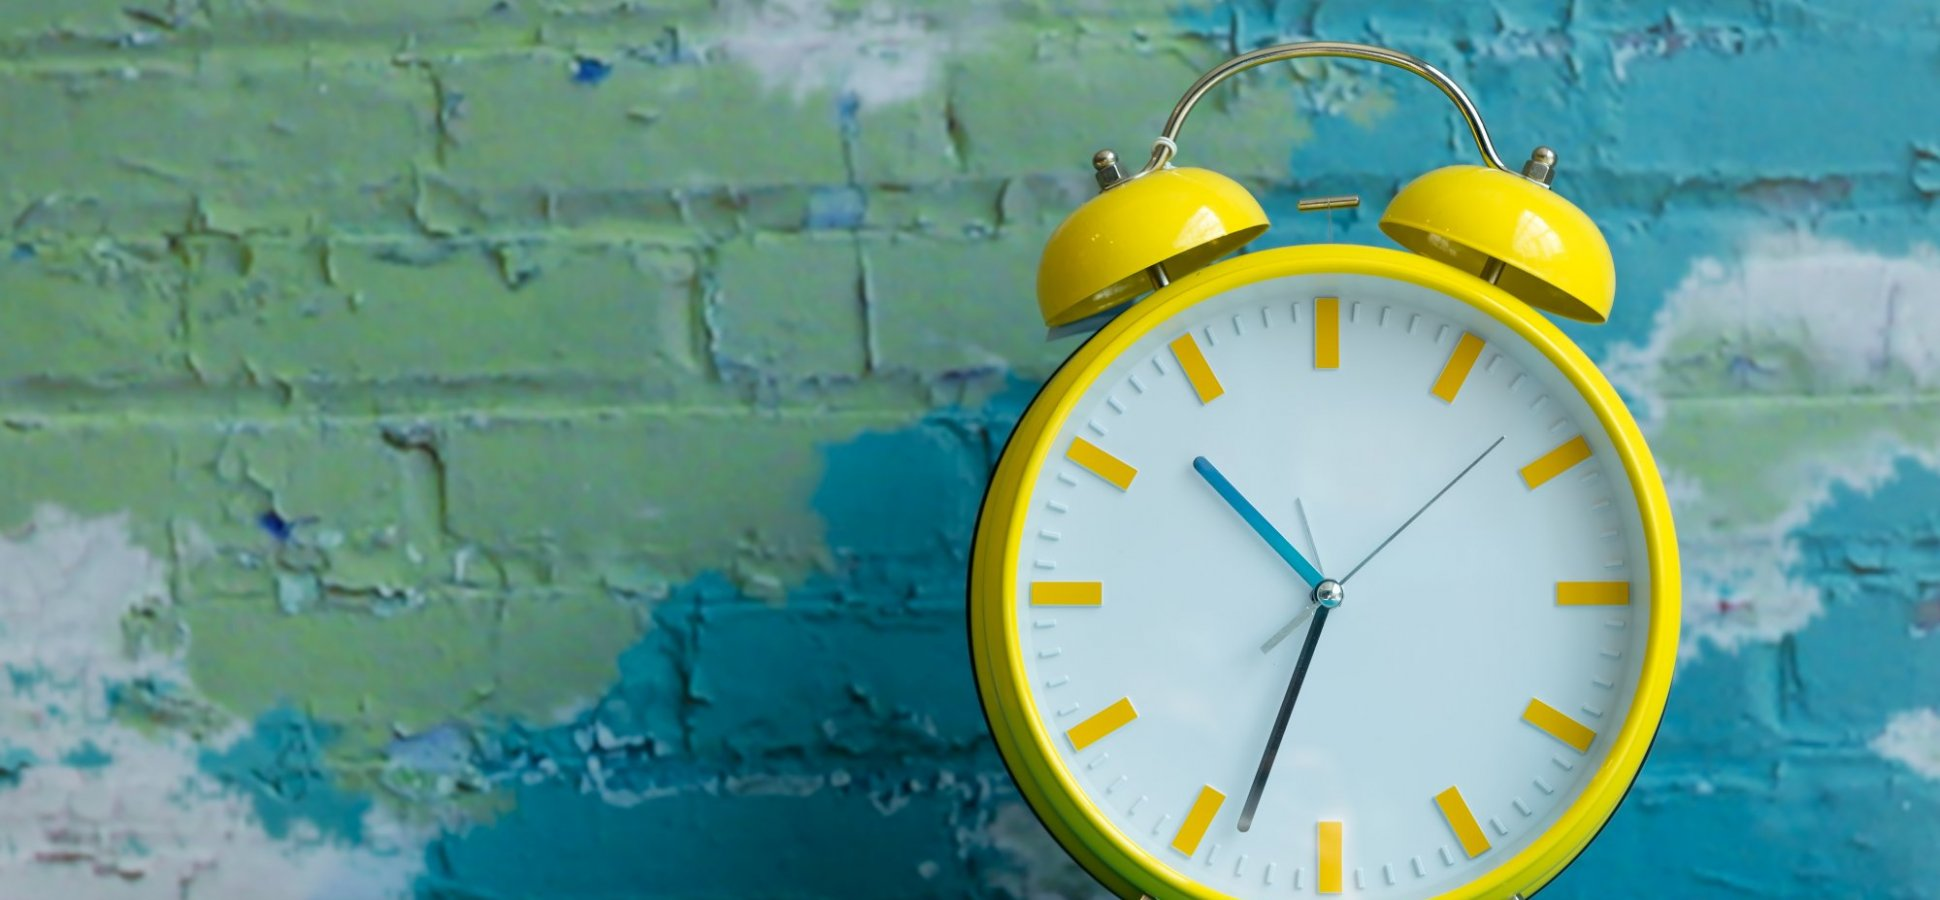 How Much Money Is Your Time Actually Worth? Find Out With This 1 Simple Exercise